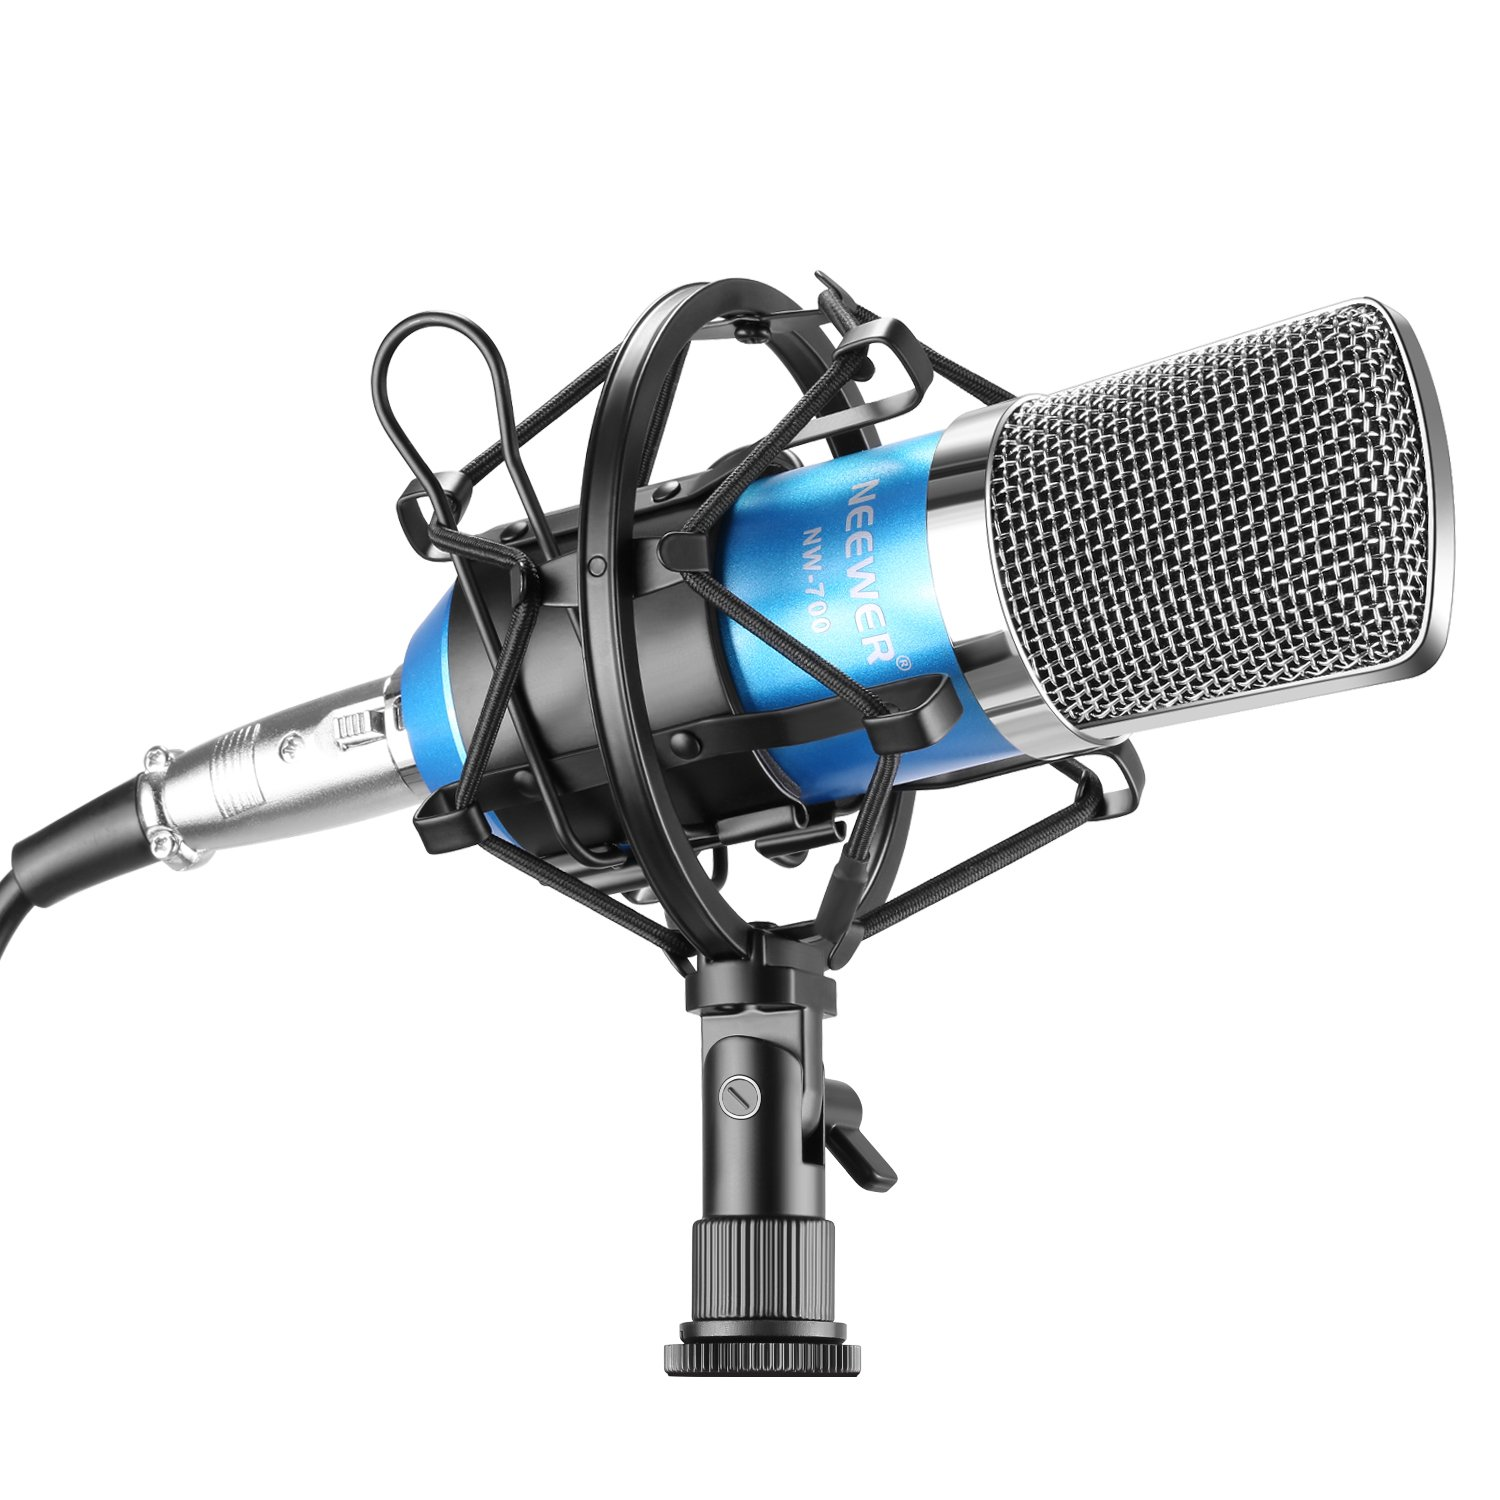 Neewer NW-700 Professional Studio Broadcasting & Recording Condenser Microphone Set Including: (1)NW-700 Condenser Microphone + (1)Metal Microphone Shock Mount + (1)Ball-type Anti-wind Foam Cap + (1)Microphone Audio Cable (Blue)